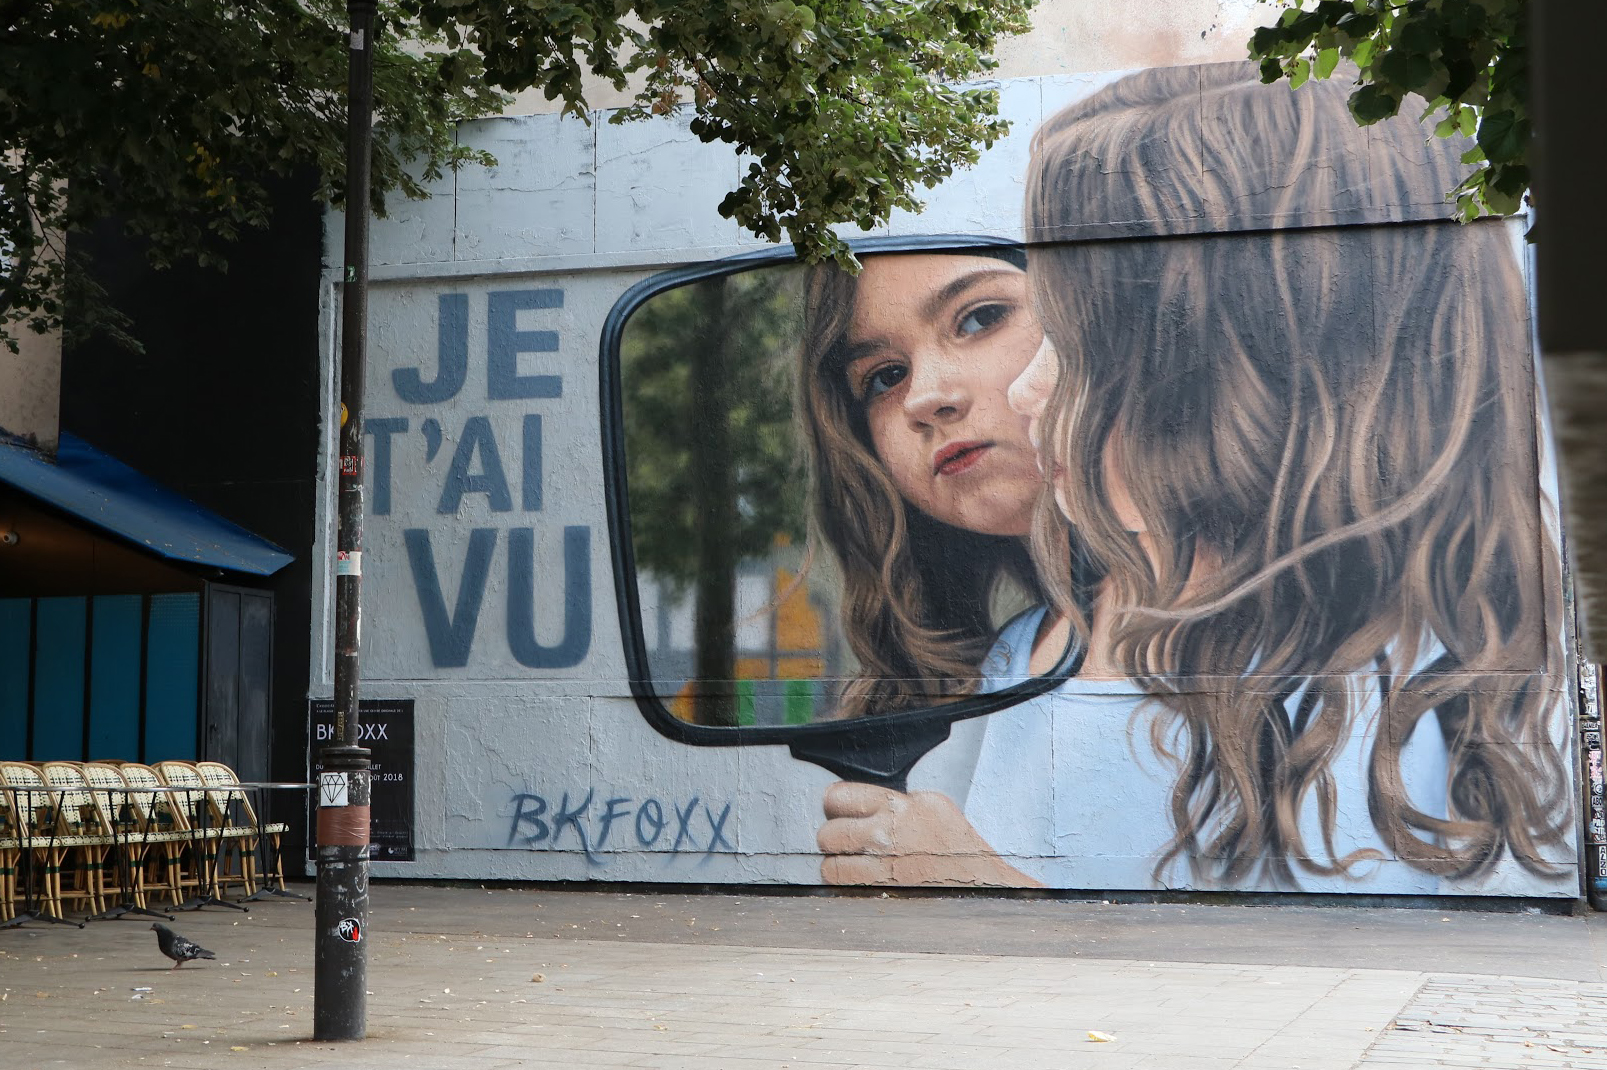 <b>Je Sais Que Tu Sais (Je T'ai Vu)<br>I Know You Know (I Saw You)</b><br>Paris, France<br>with Le Mur Oberkampf, July 2018<br>photo by Virginie Favard